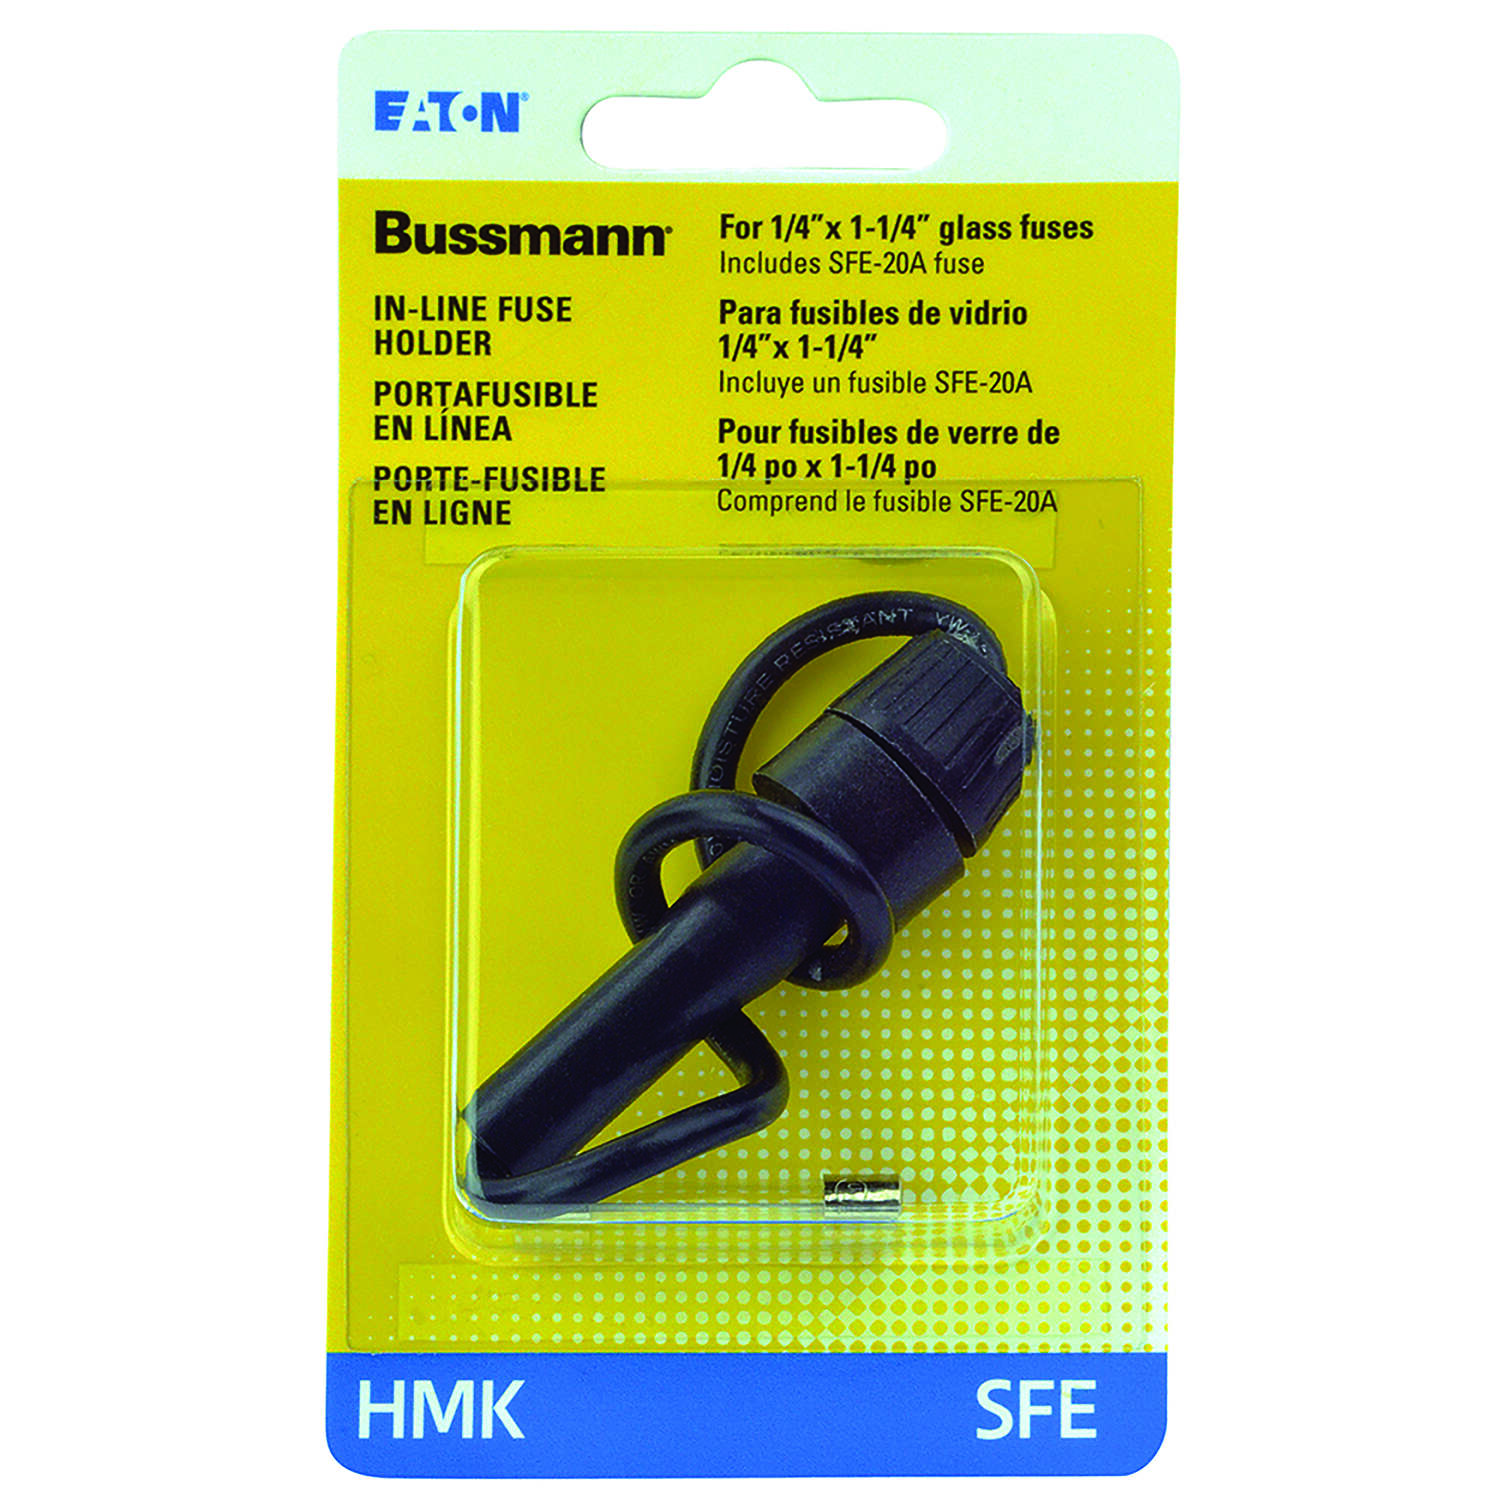 Bussmann 30 amps SFE In-Line Fuse Holder 1 pk